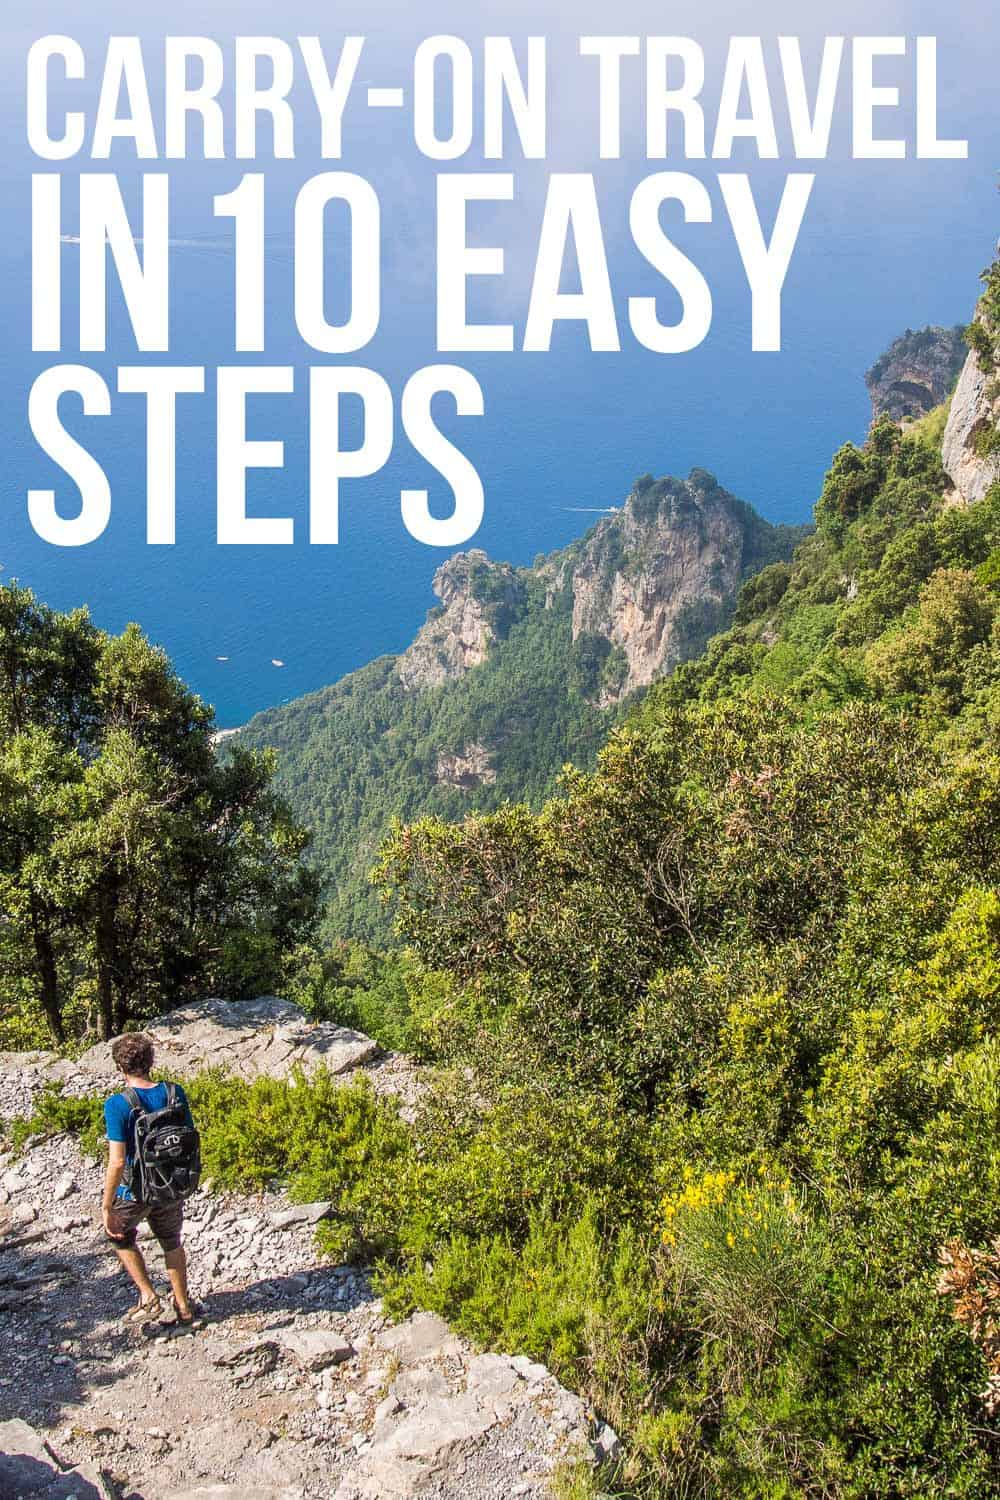 Carry-on travel doesn't have to be difficult. Follow these 10 easy steps and pack light for your next trip.